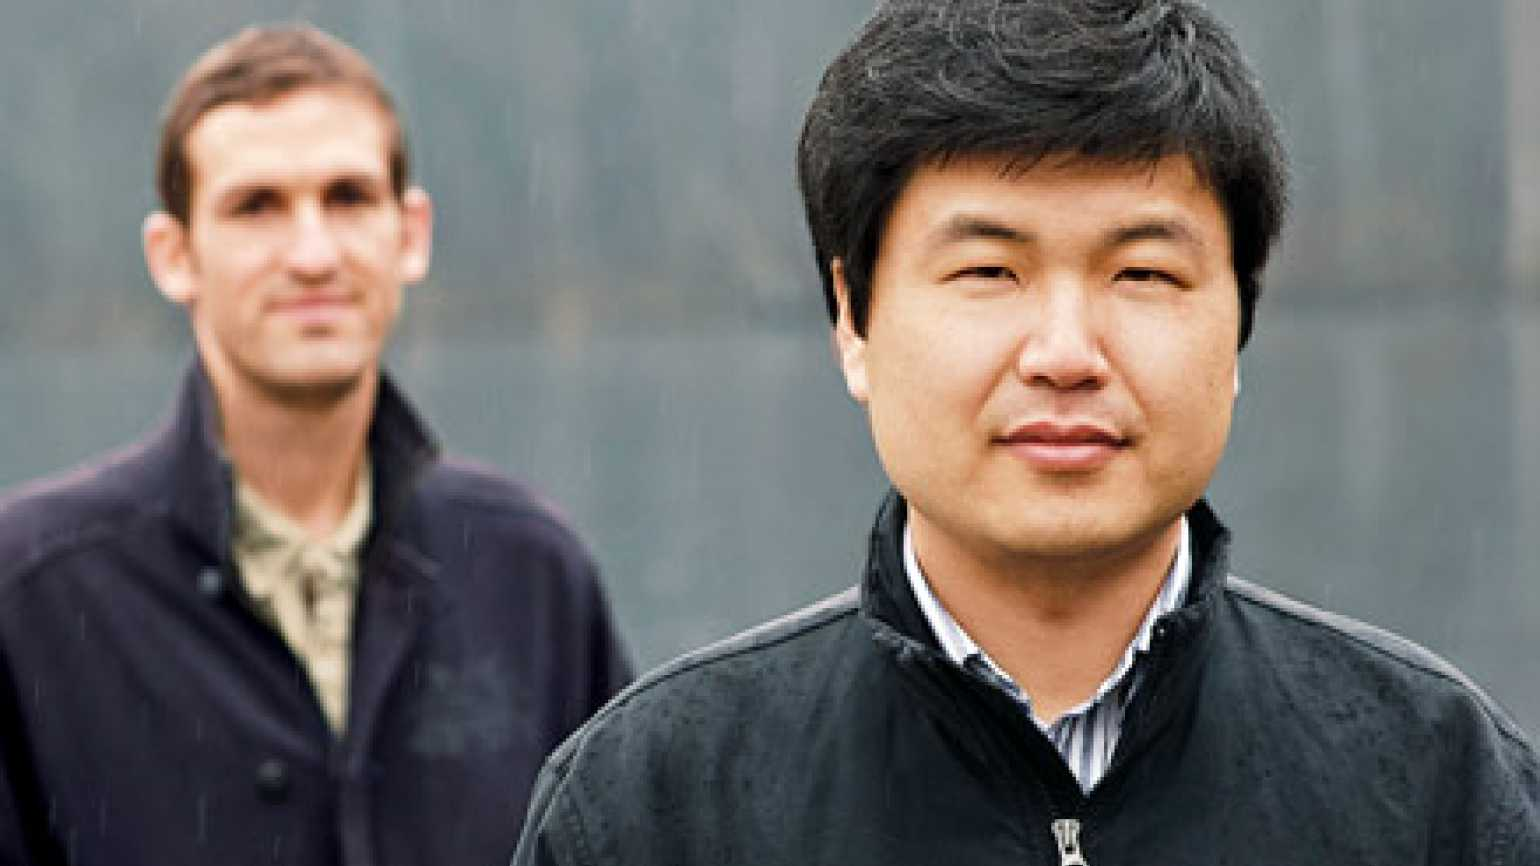 Haengso Hong (right) with his rescuer, Robert Fusté